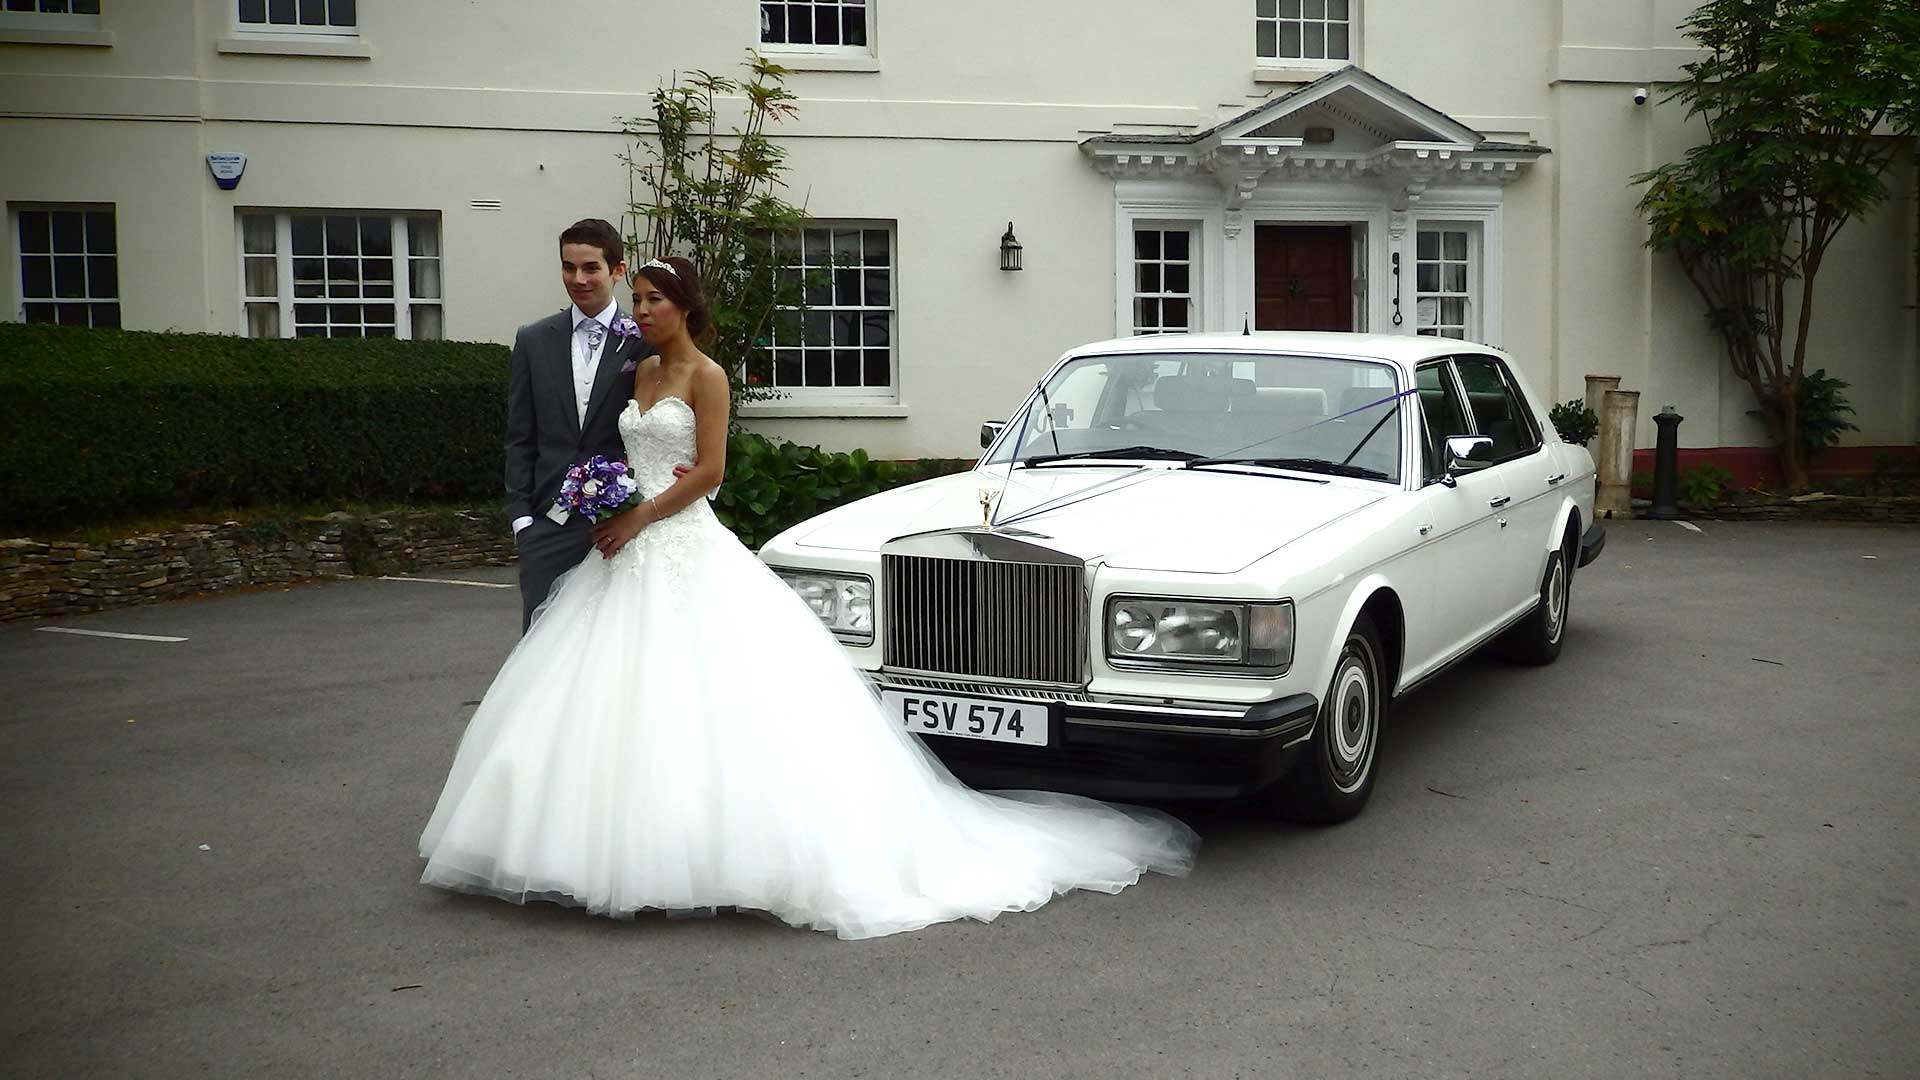 Niall and Elle in front of the Rolls-Royce Silver Spur